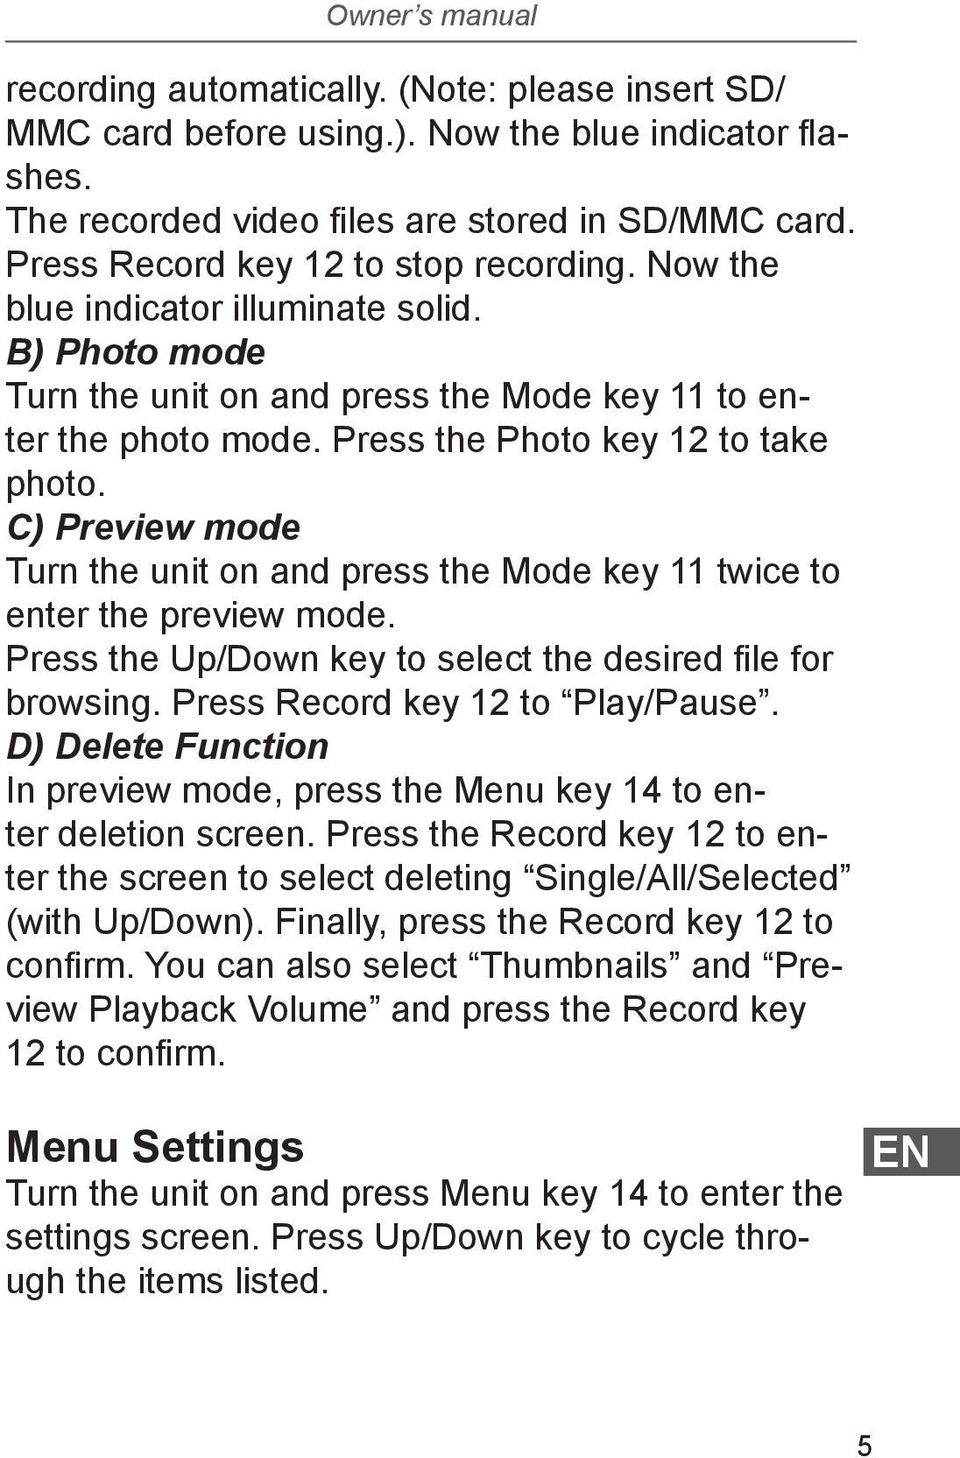 C) Preview mode Turn the unit on and press the Mode key 11 twice to enter the preview mode. Press the Up/Down key to select the desired file for browsing. Press Record key 12 to Play/Pause.